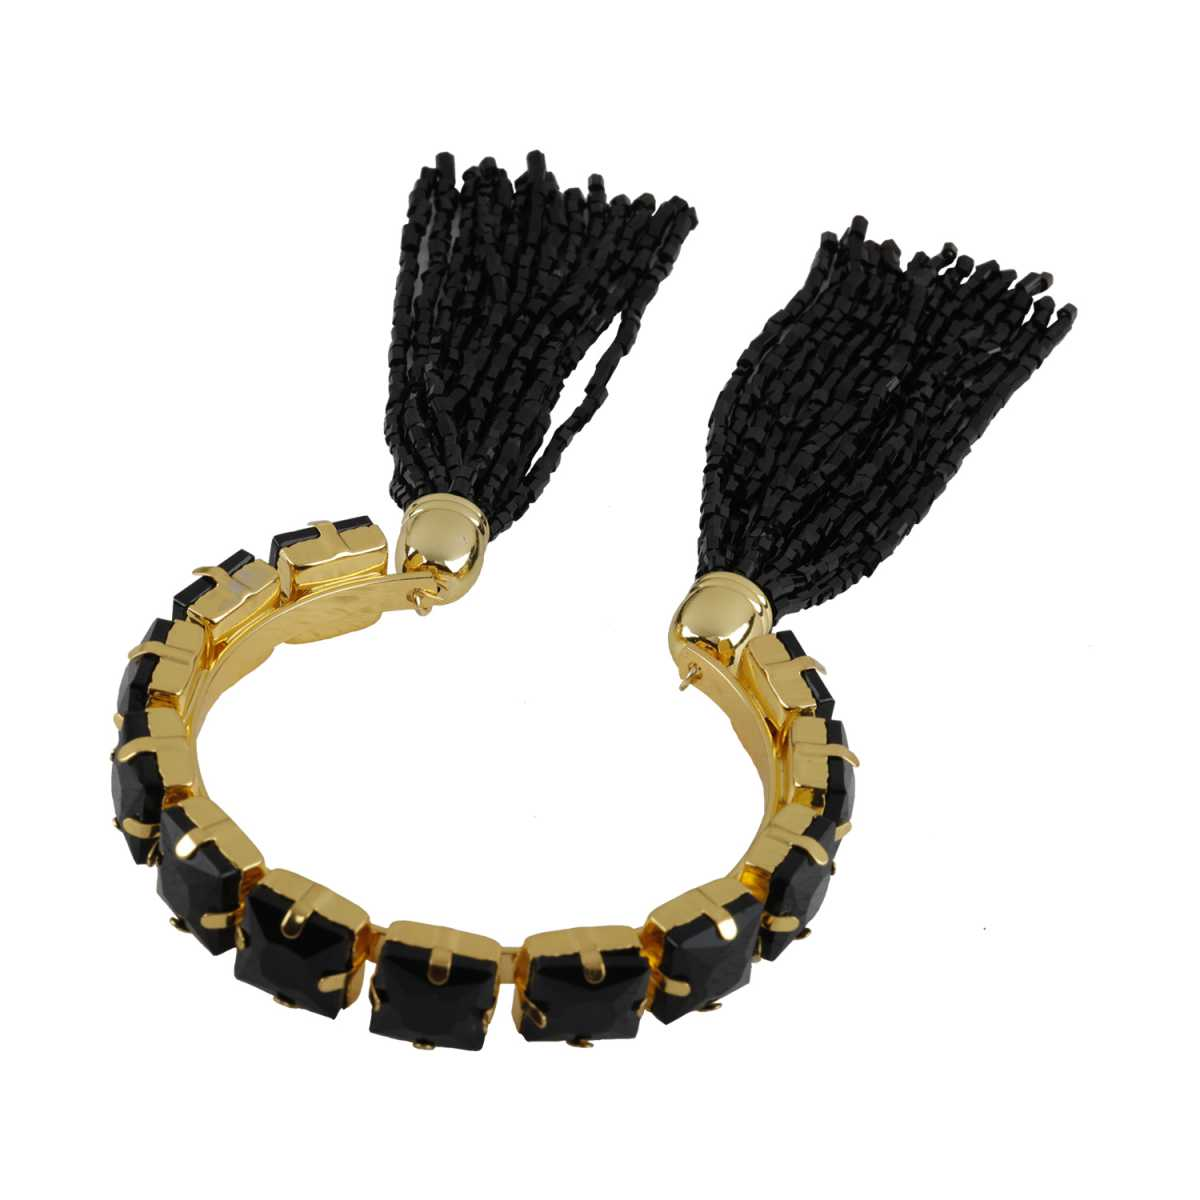 Elegant Black Colour Stone Harmony Coff And Kada Bracelet For Girls And Women